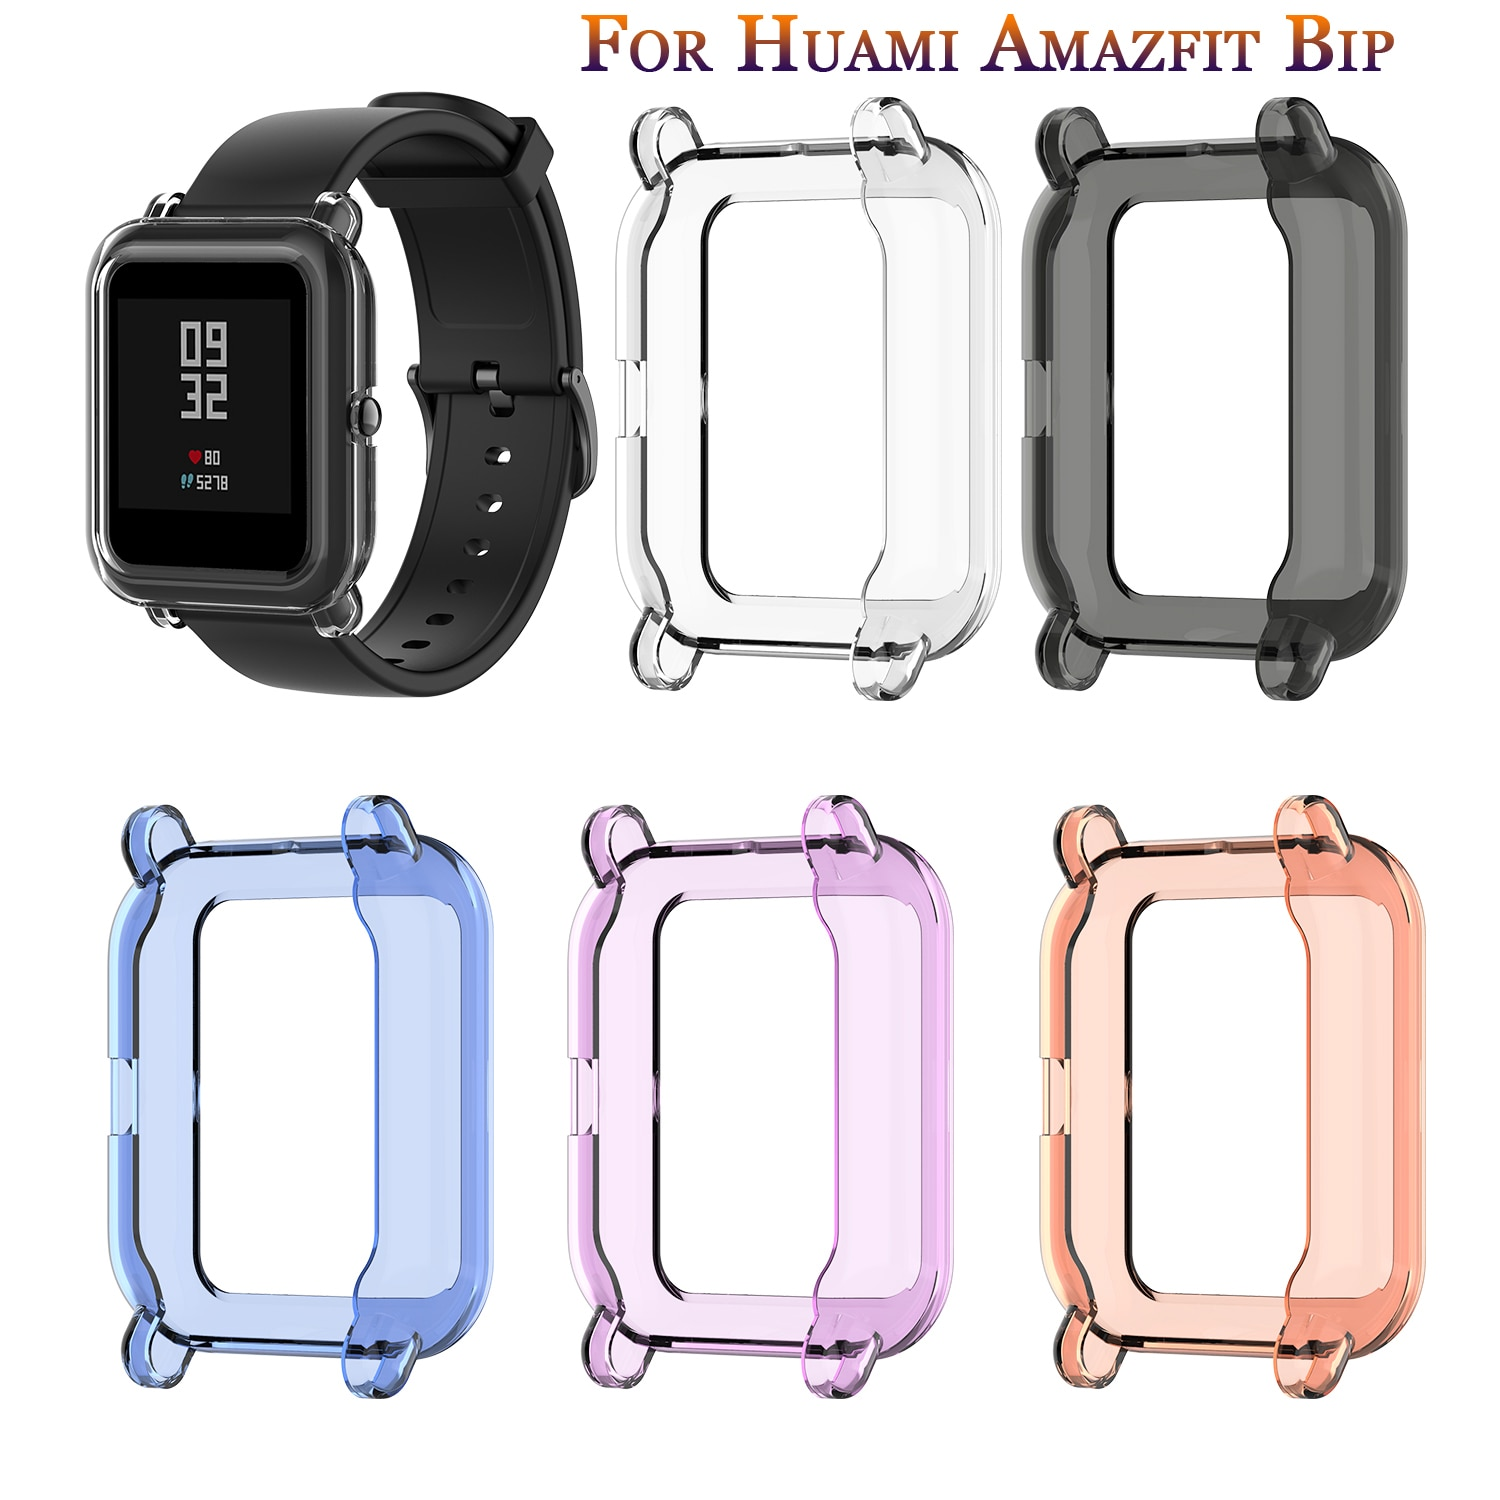 new-screen-protector-slim-colorful-frame-tpu-case-cover-protect-shell-for-xiaomi-huami-amazfit-bip-younth-watch-screen-protector